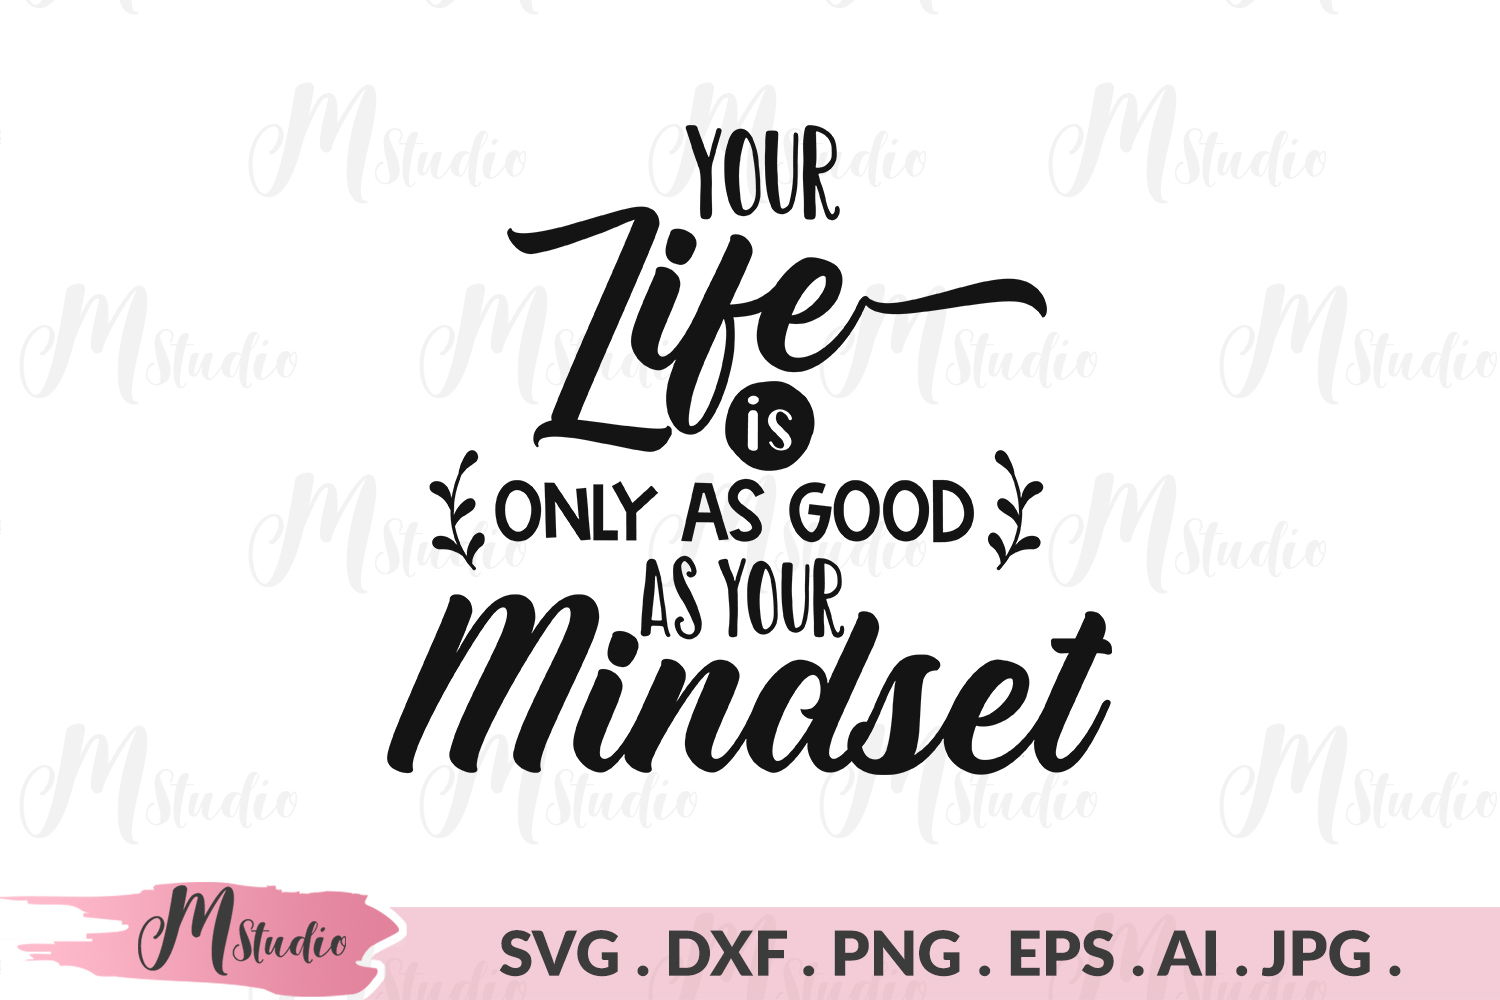 Your life is only as good as your mindset svg. example image 1